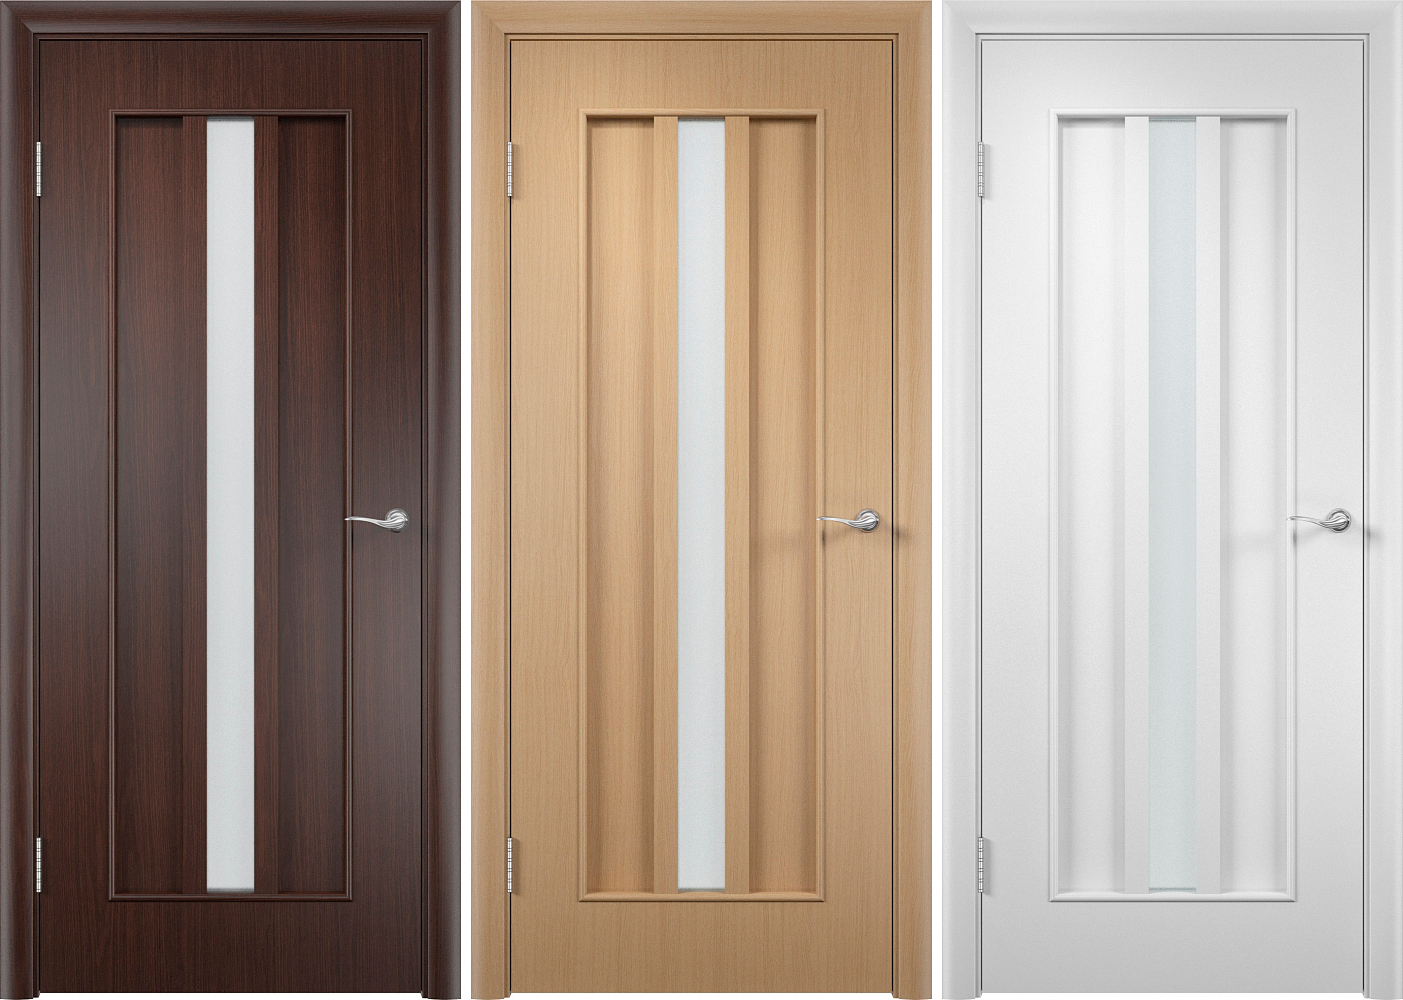 Dark brown, beige and white laminated interior doors